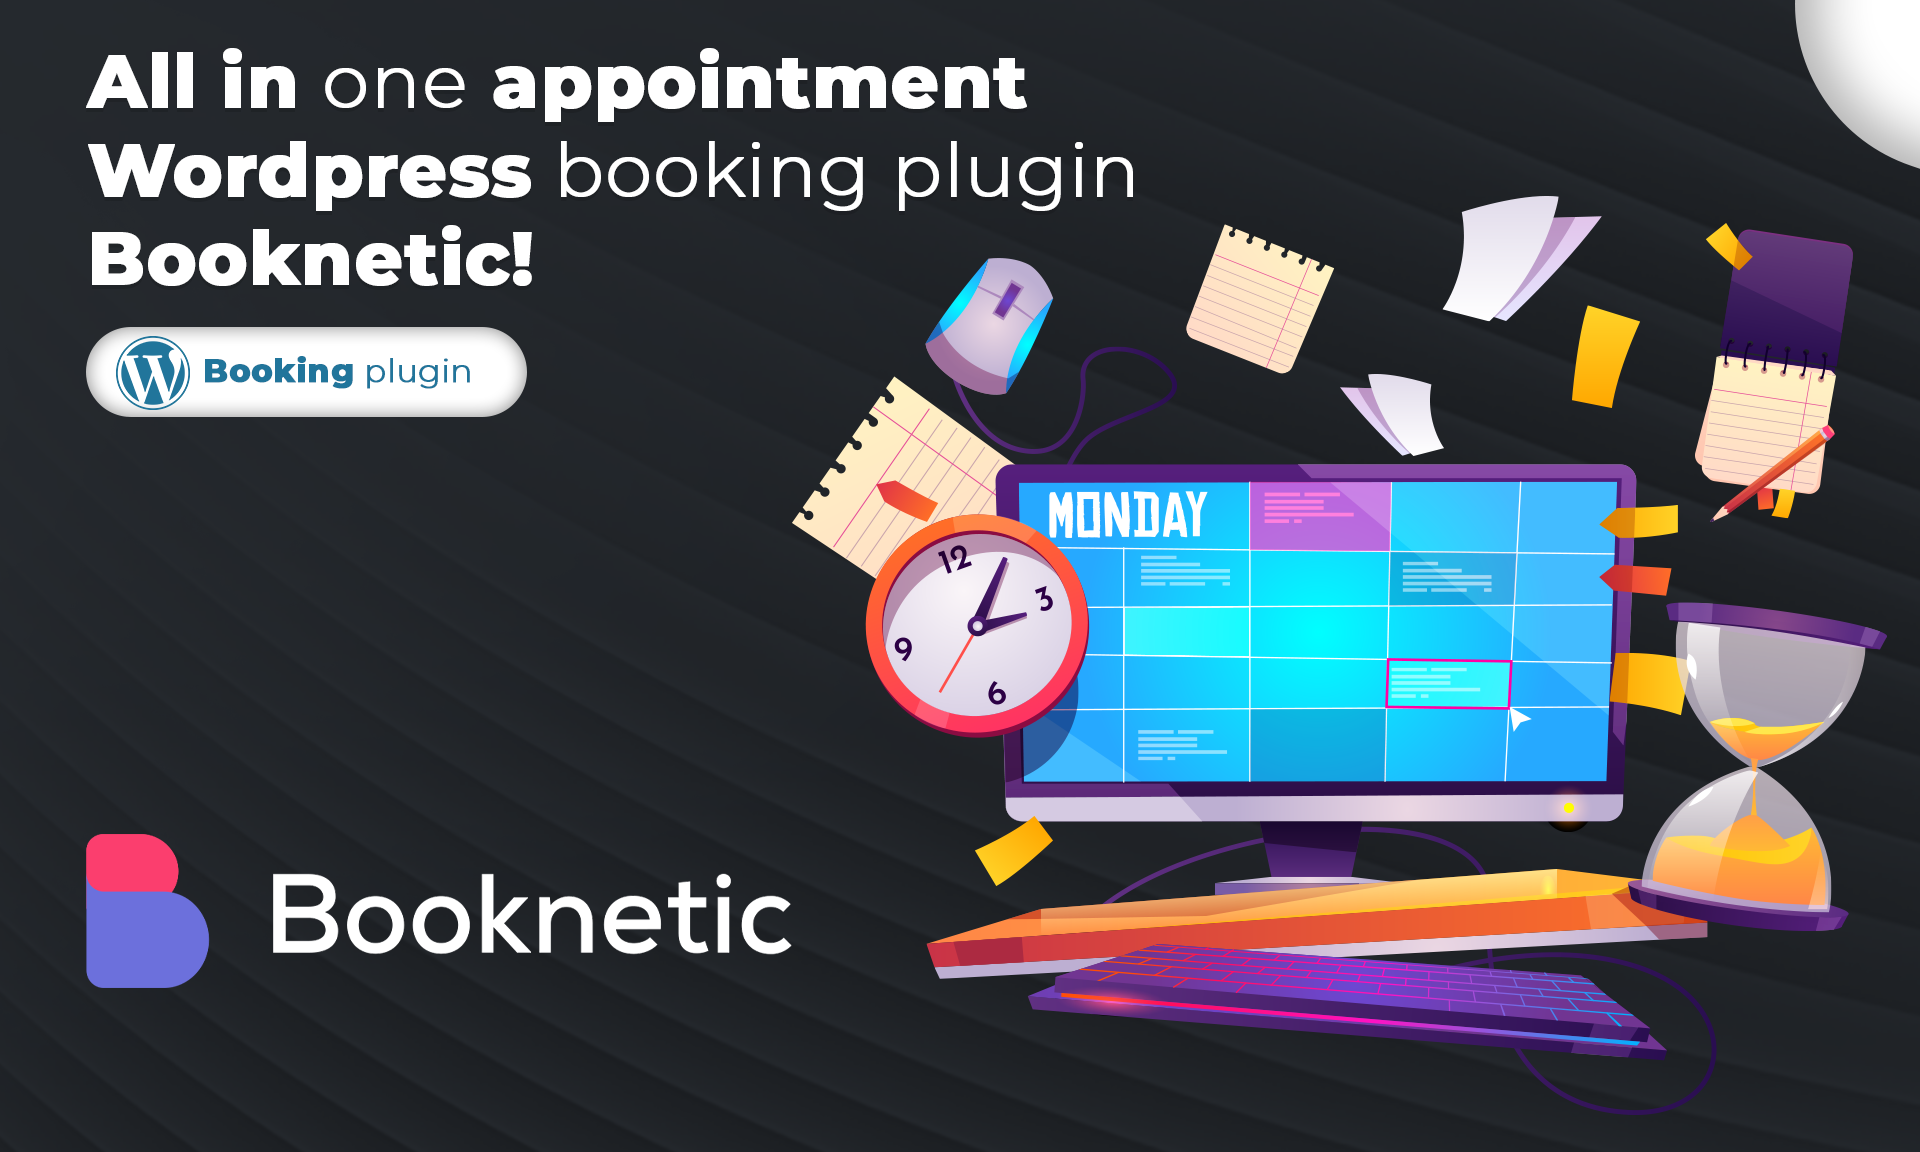 All in one appointment WordPress booking plugin Booknetic